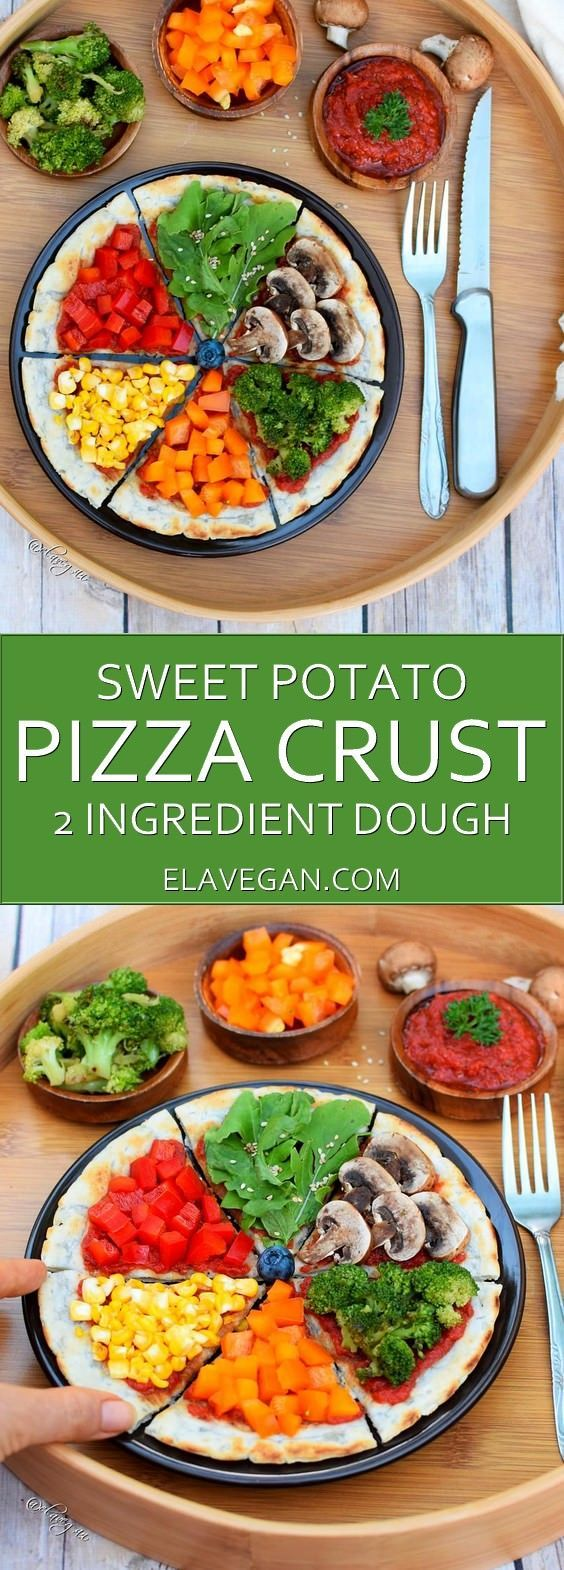 Sweet potato pizza crust recipe with 2 ingredients only. This gluten free dough is vegan, yeast free, paleo friendly, healthy and you will need just two ingredients. Give my vegan pizza crust a try